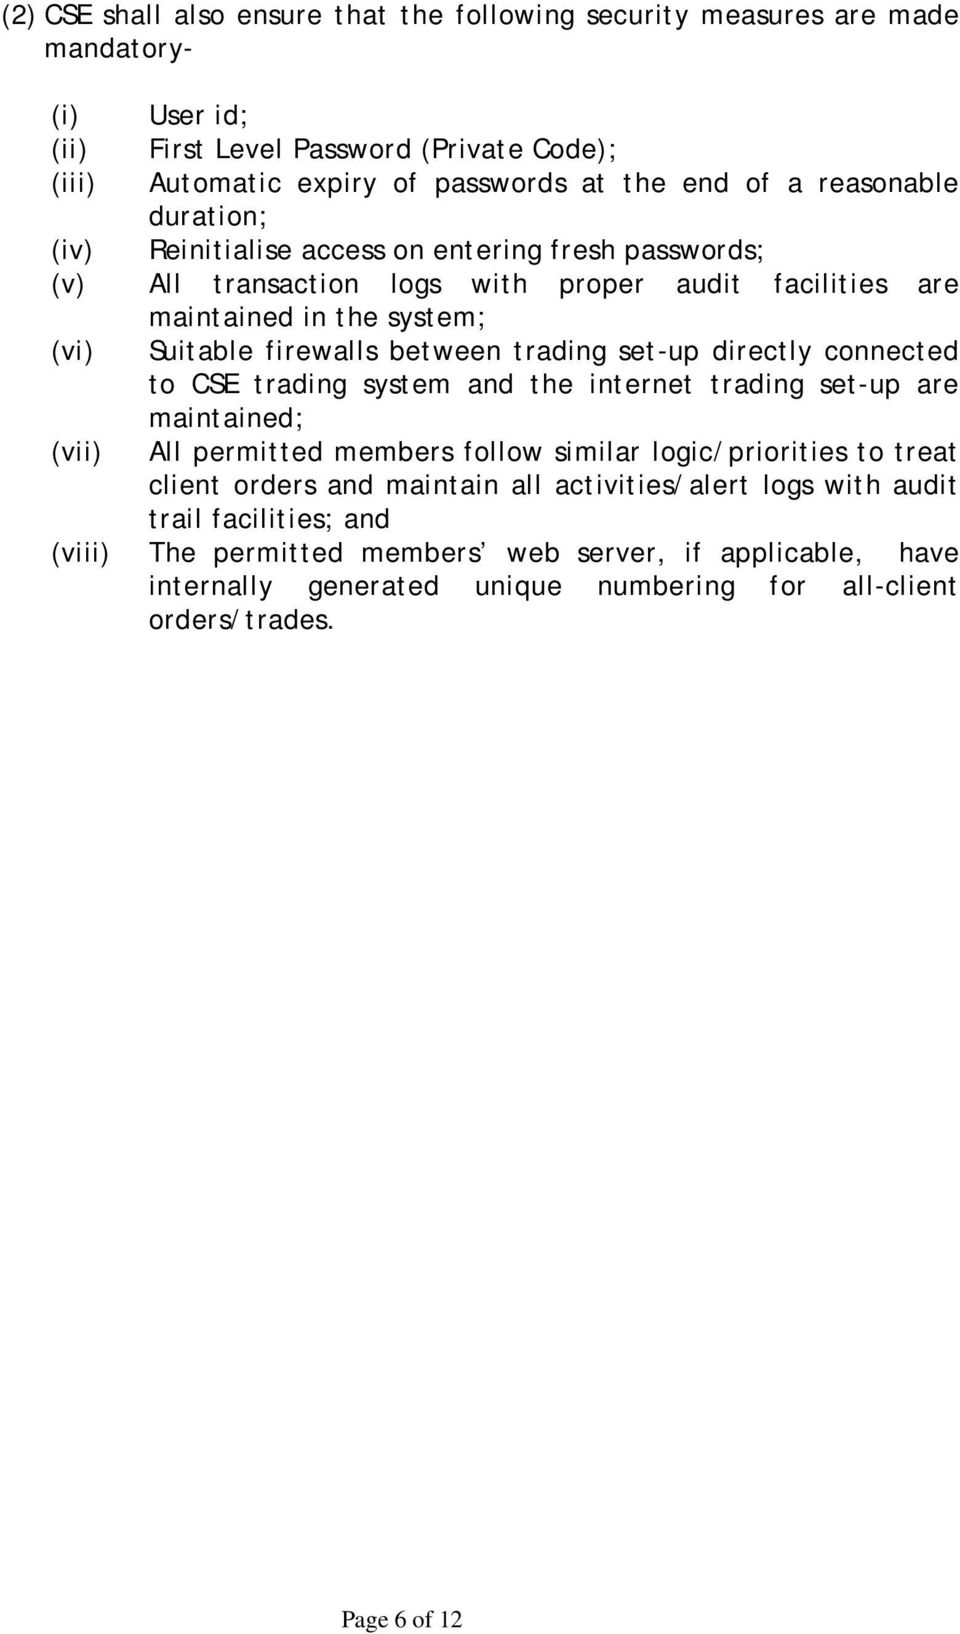 trading set-up directly connected to CSE trading system and the internet trading set-up are maintained; (vii) All permitted members follow similar logic/priorities to treat client orders and